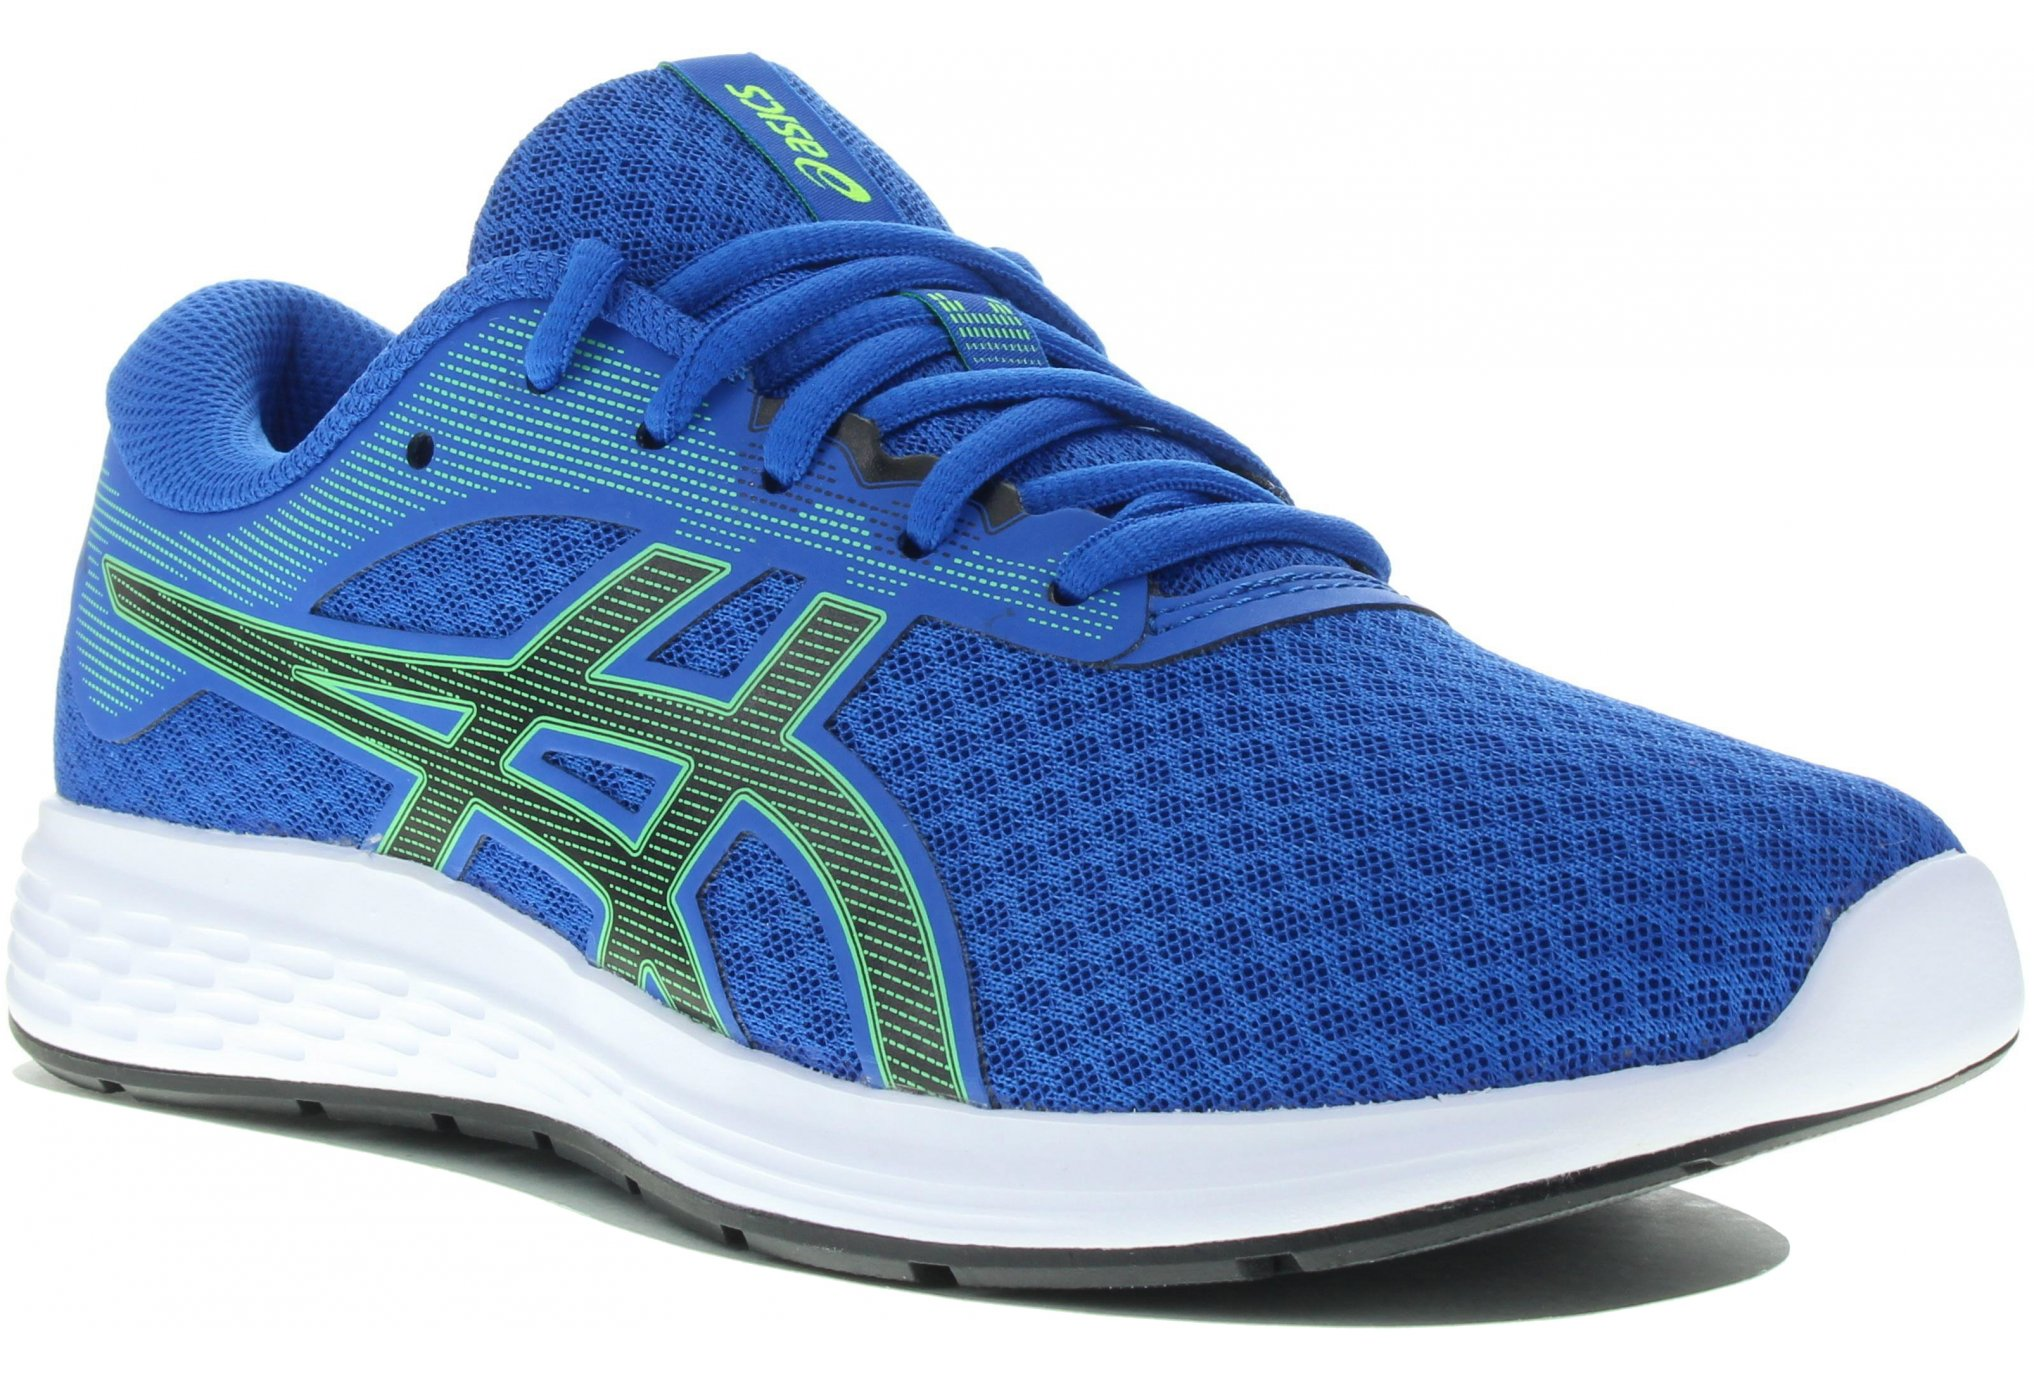 Asics Patriot 11 GS Chaussures homme